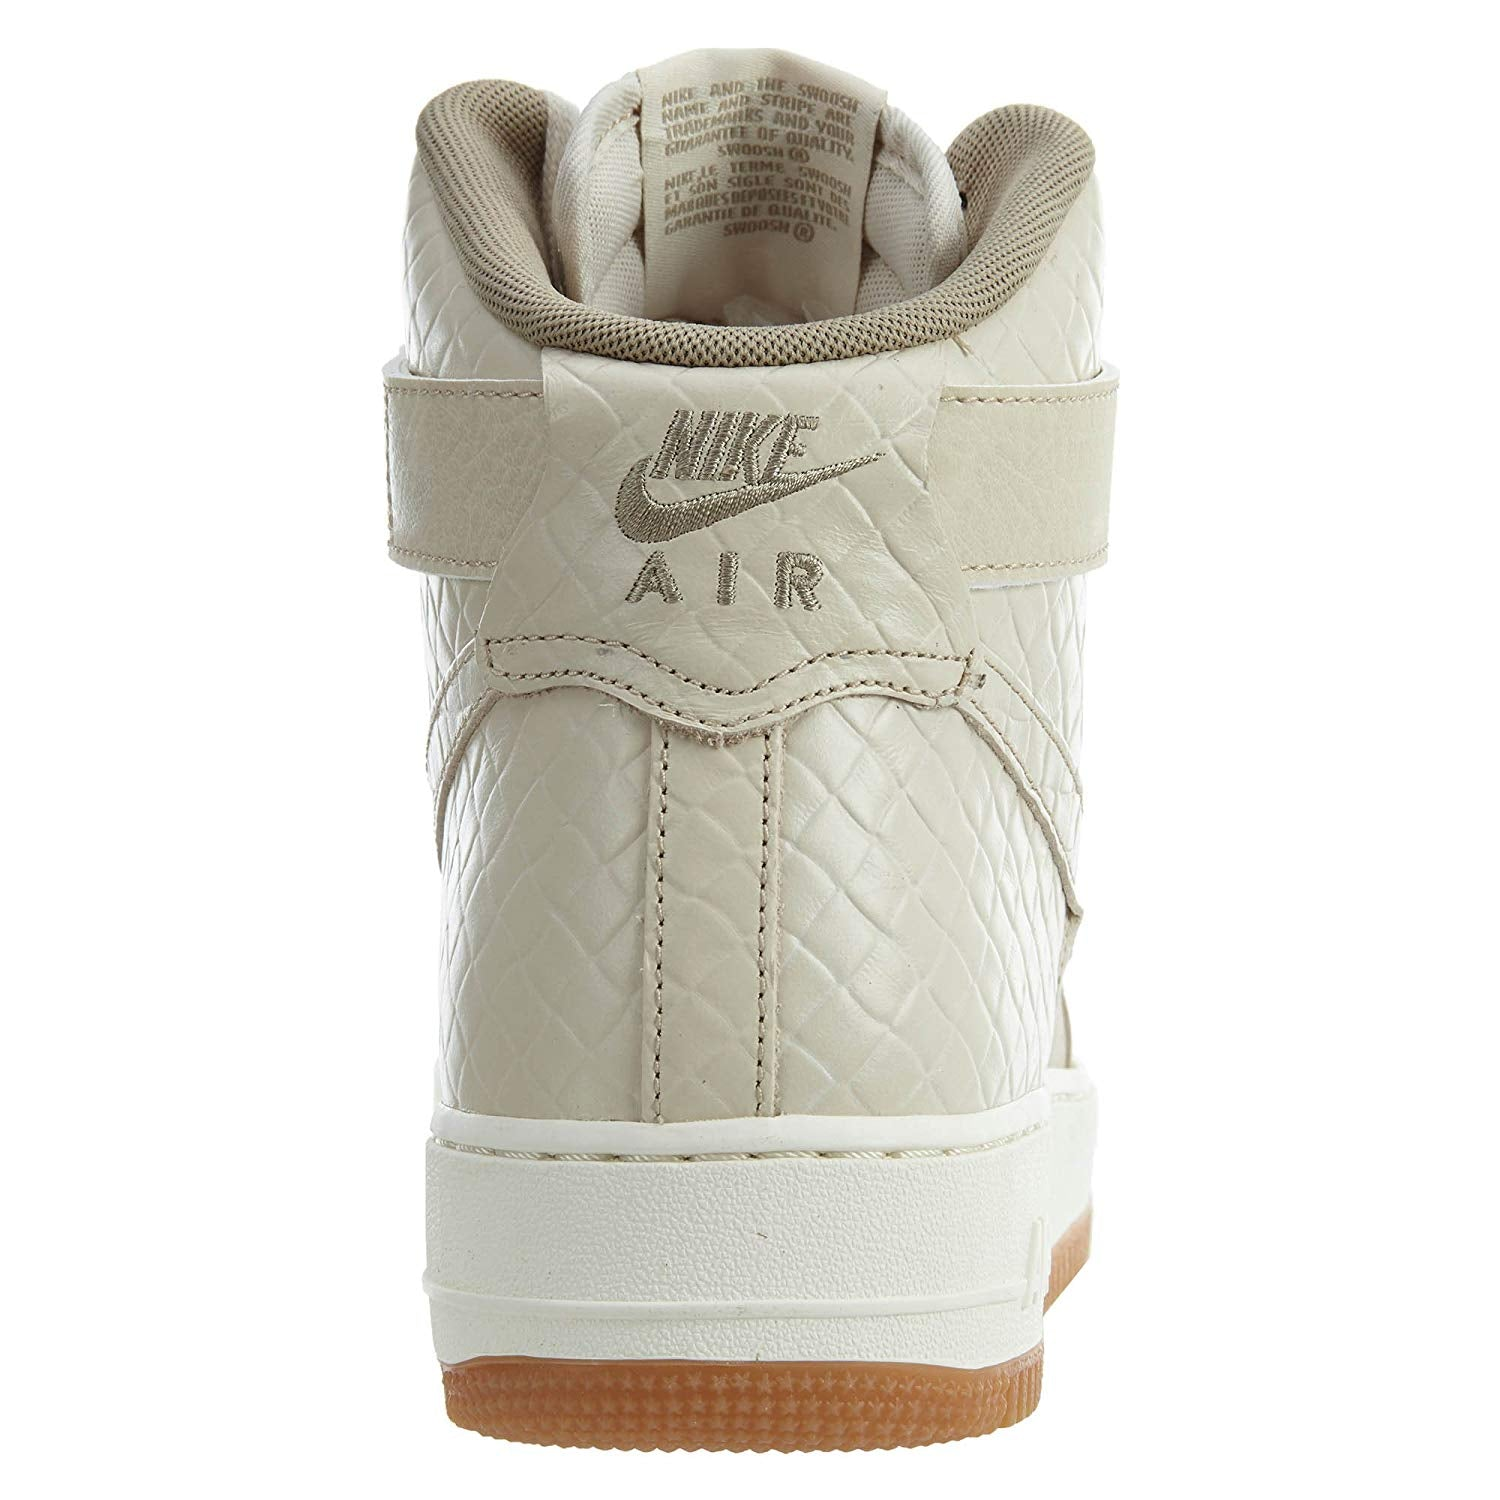 brand new 86c15 a13ef ... Load image into Gallery viewer, NIKE Air Force 1 Hi Premium Oatmeal  Oatmeal- ...